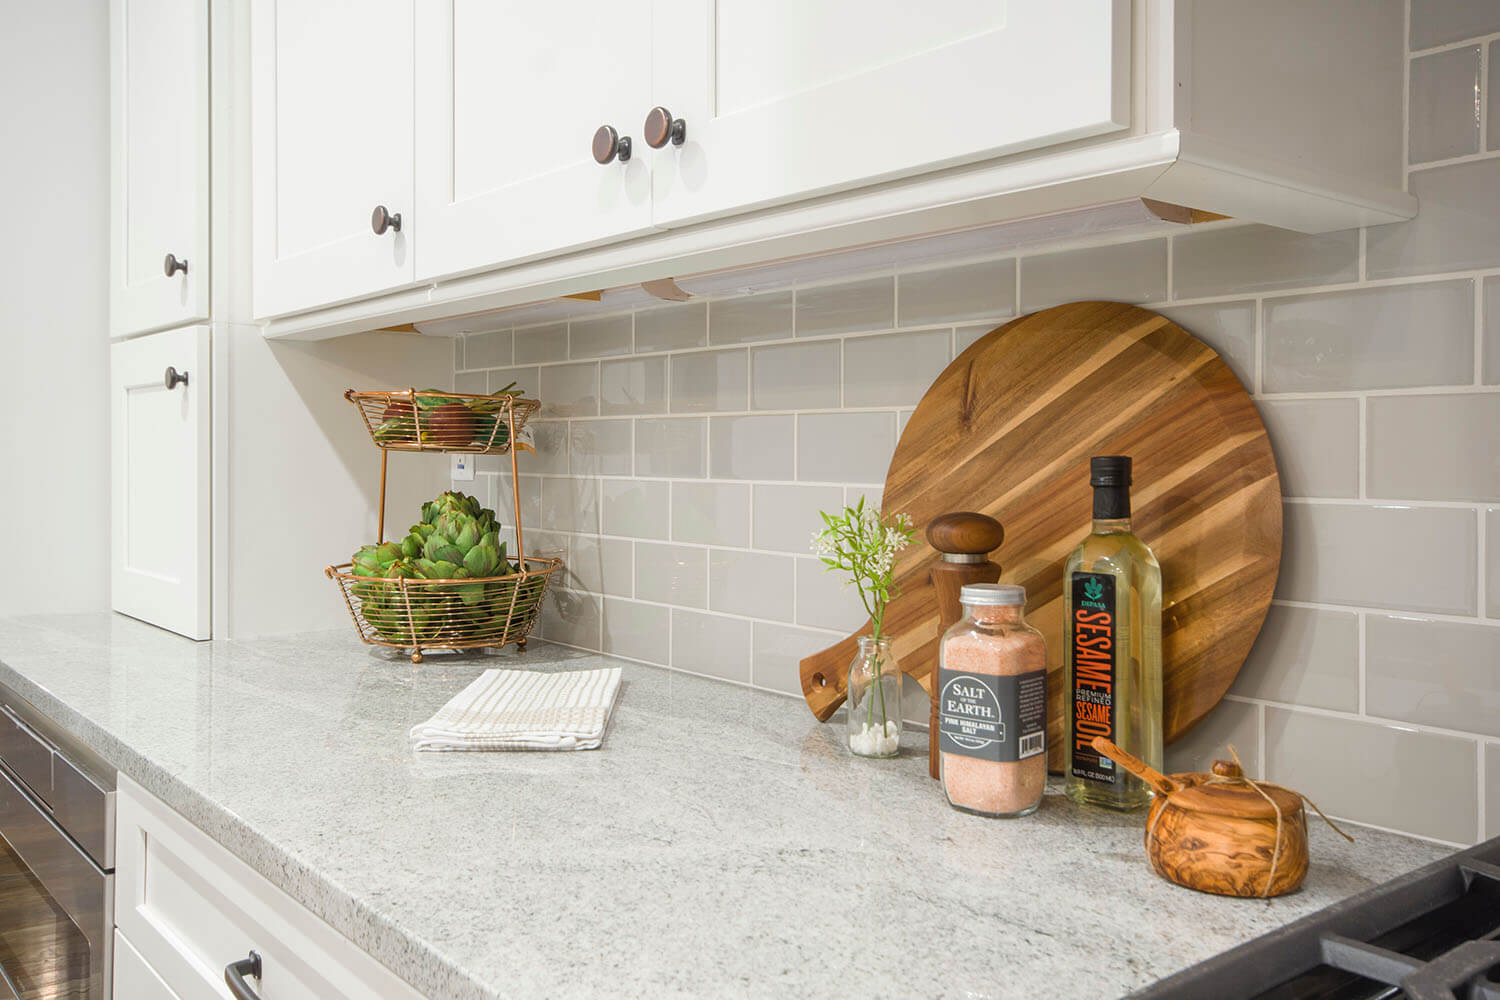 granite countertops with subway tile backsplash